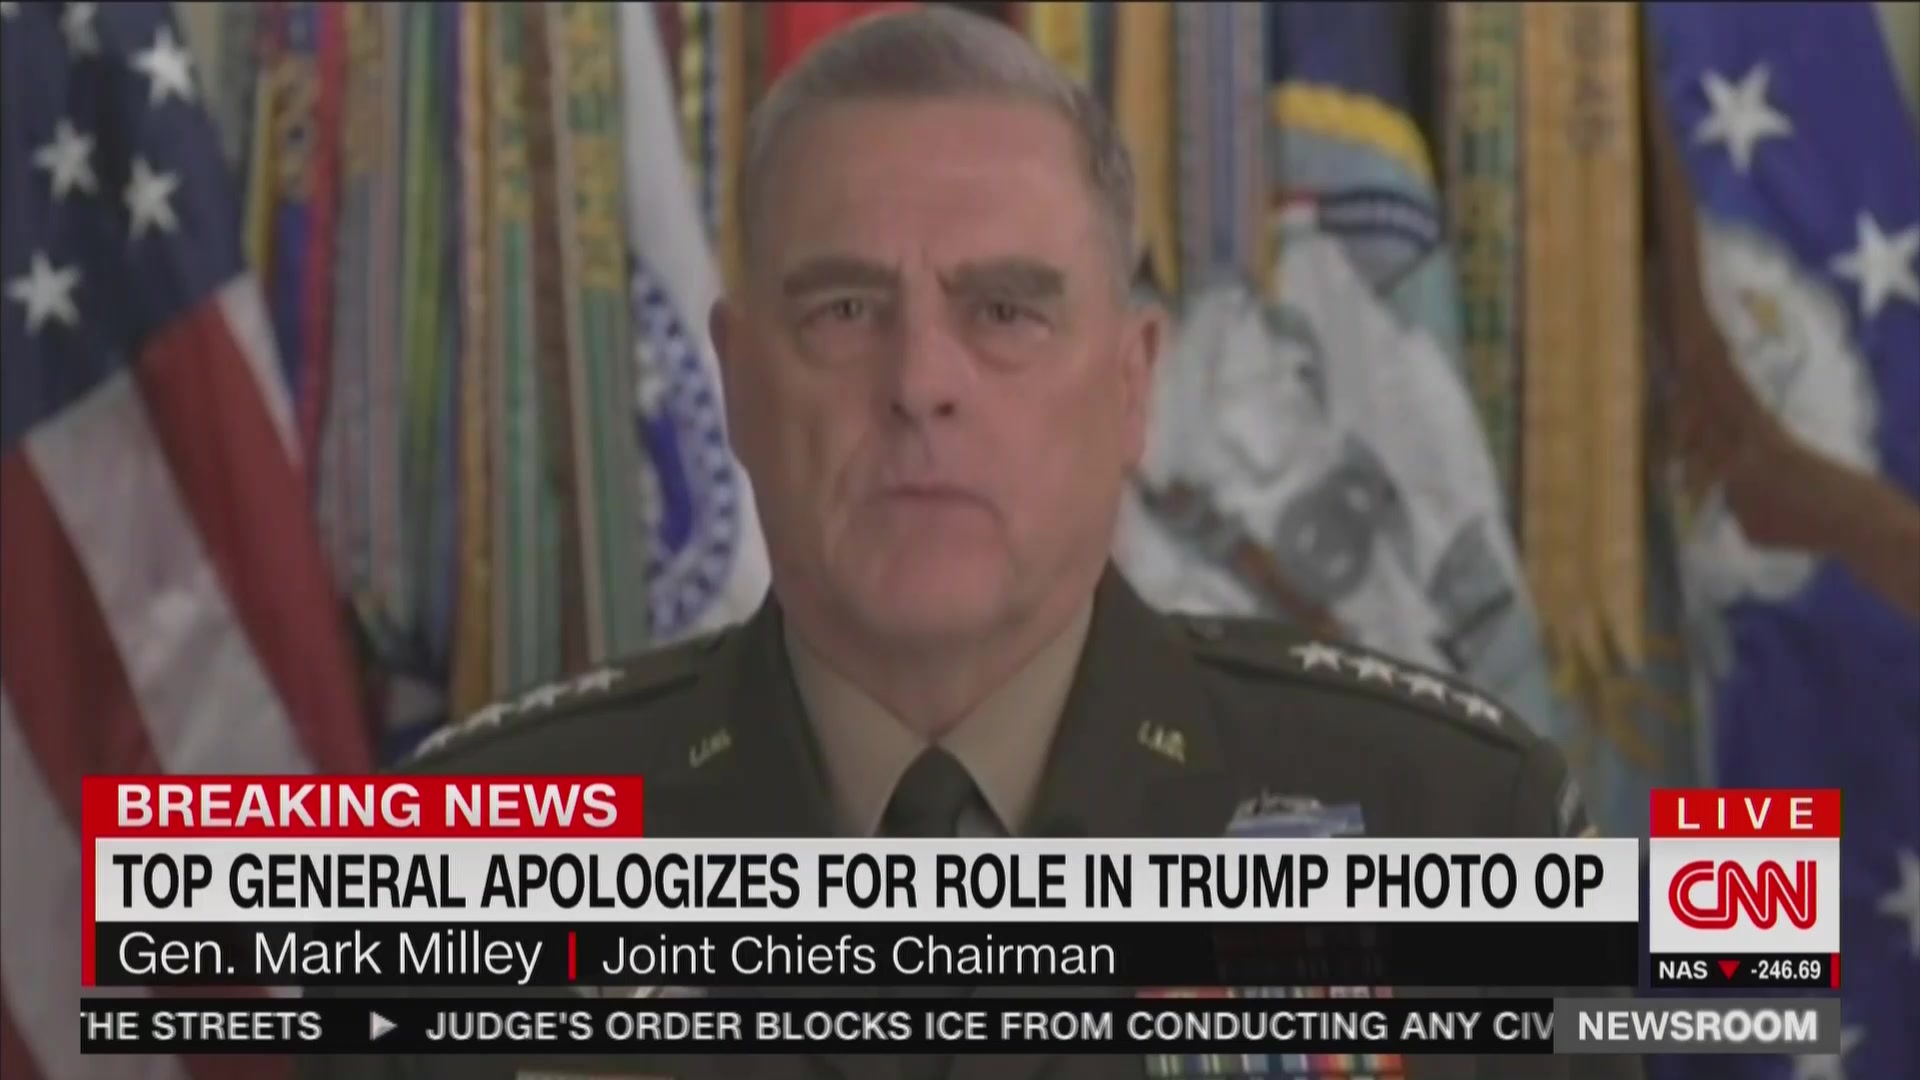 Gen. Mark Milley Apologizes for Appearing in Trump Photo-Op